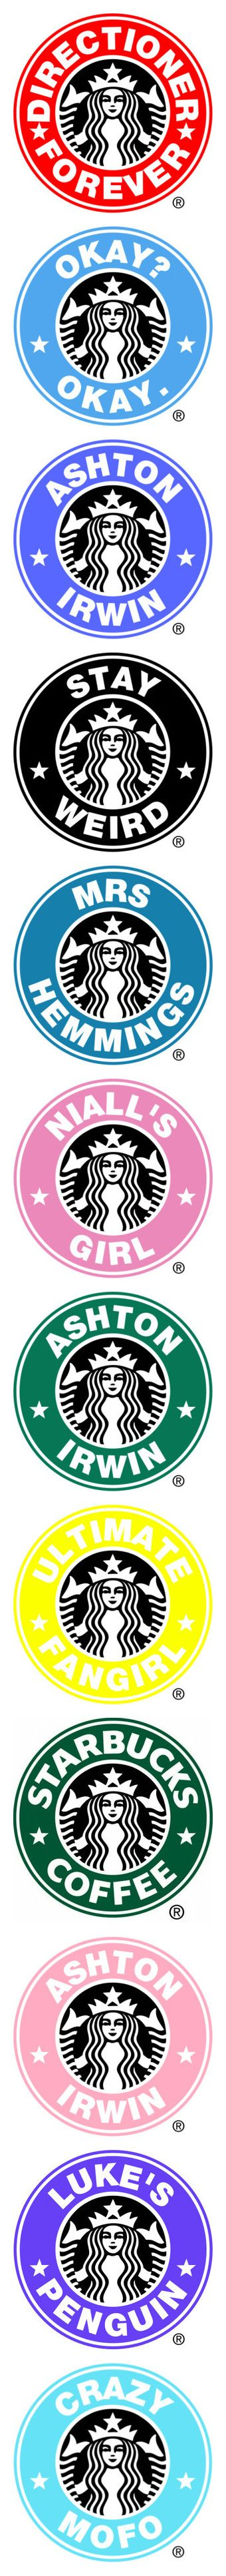 """""""starbucks"""" by miss-971 ❤ liked on Polyvore featuring one direction, backgrounds, logo, other fillers, filler, starbucks logos, other, 5sos, ashton and fillers"""